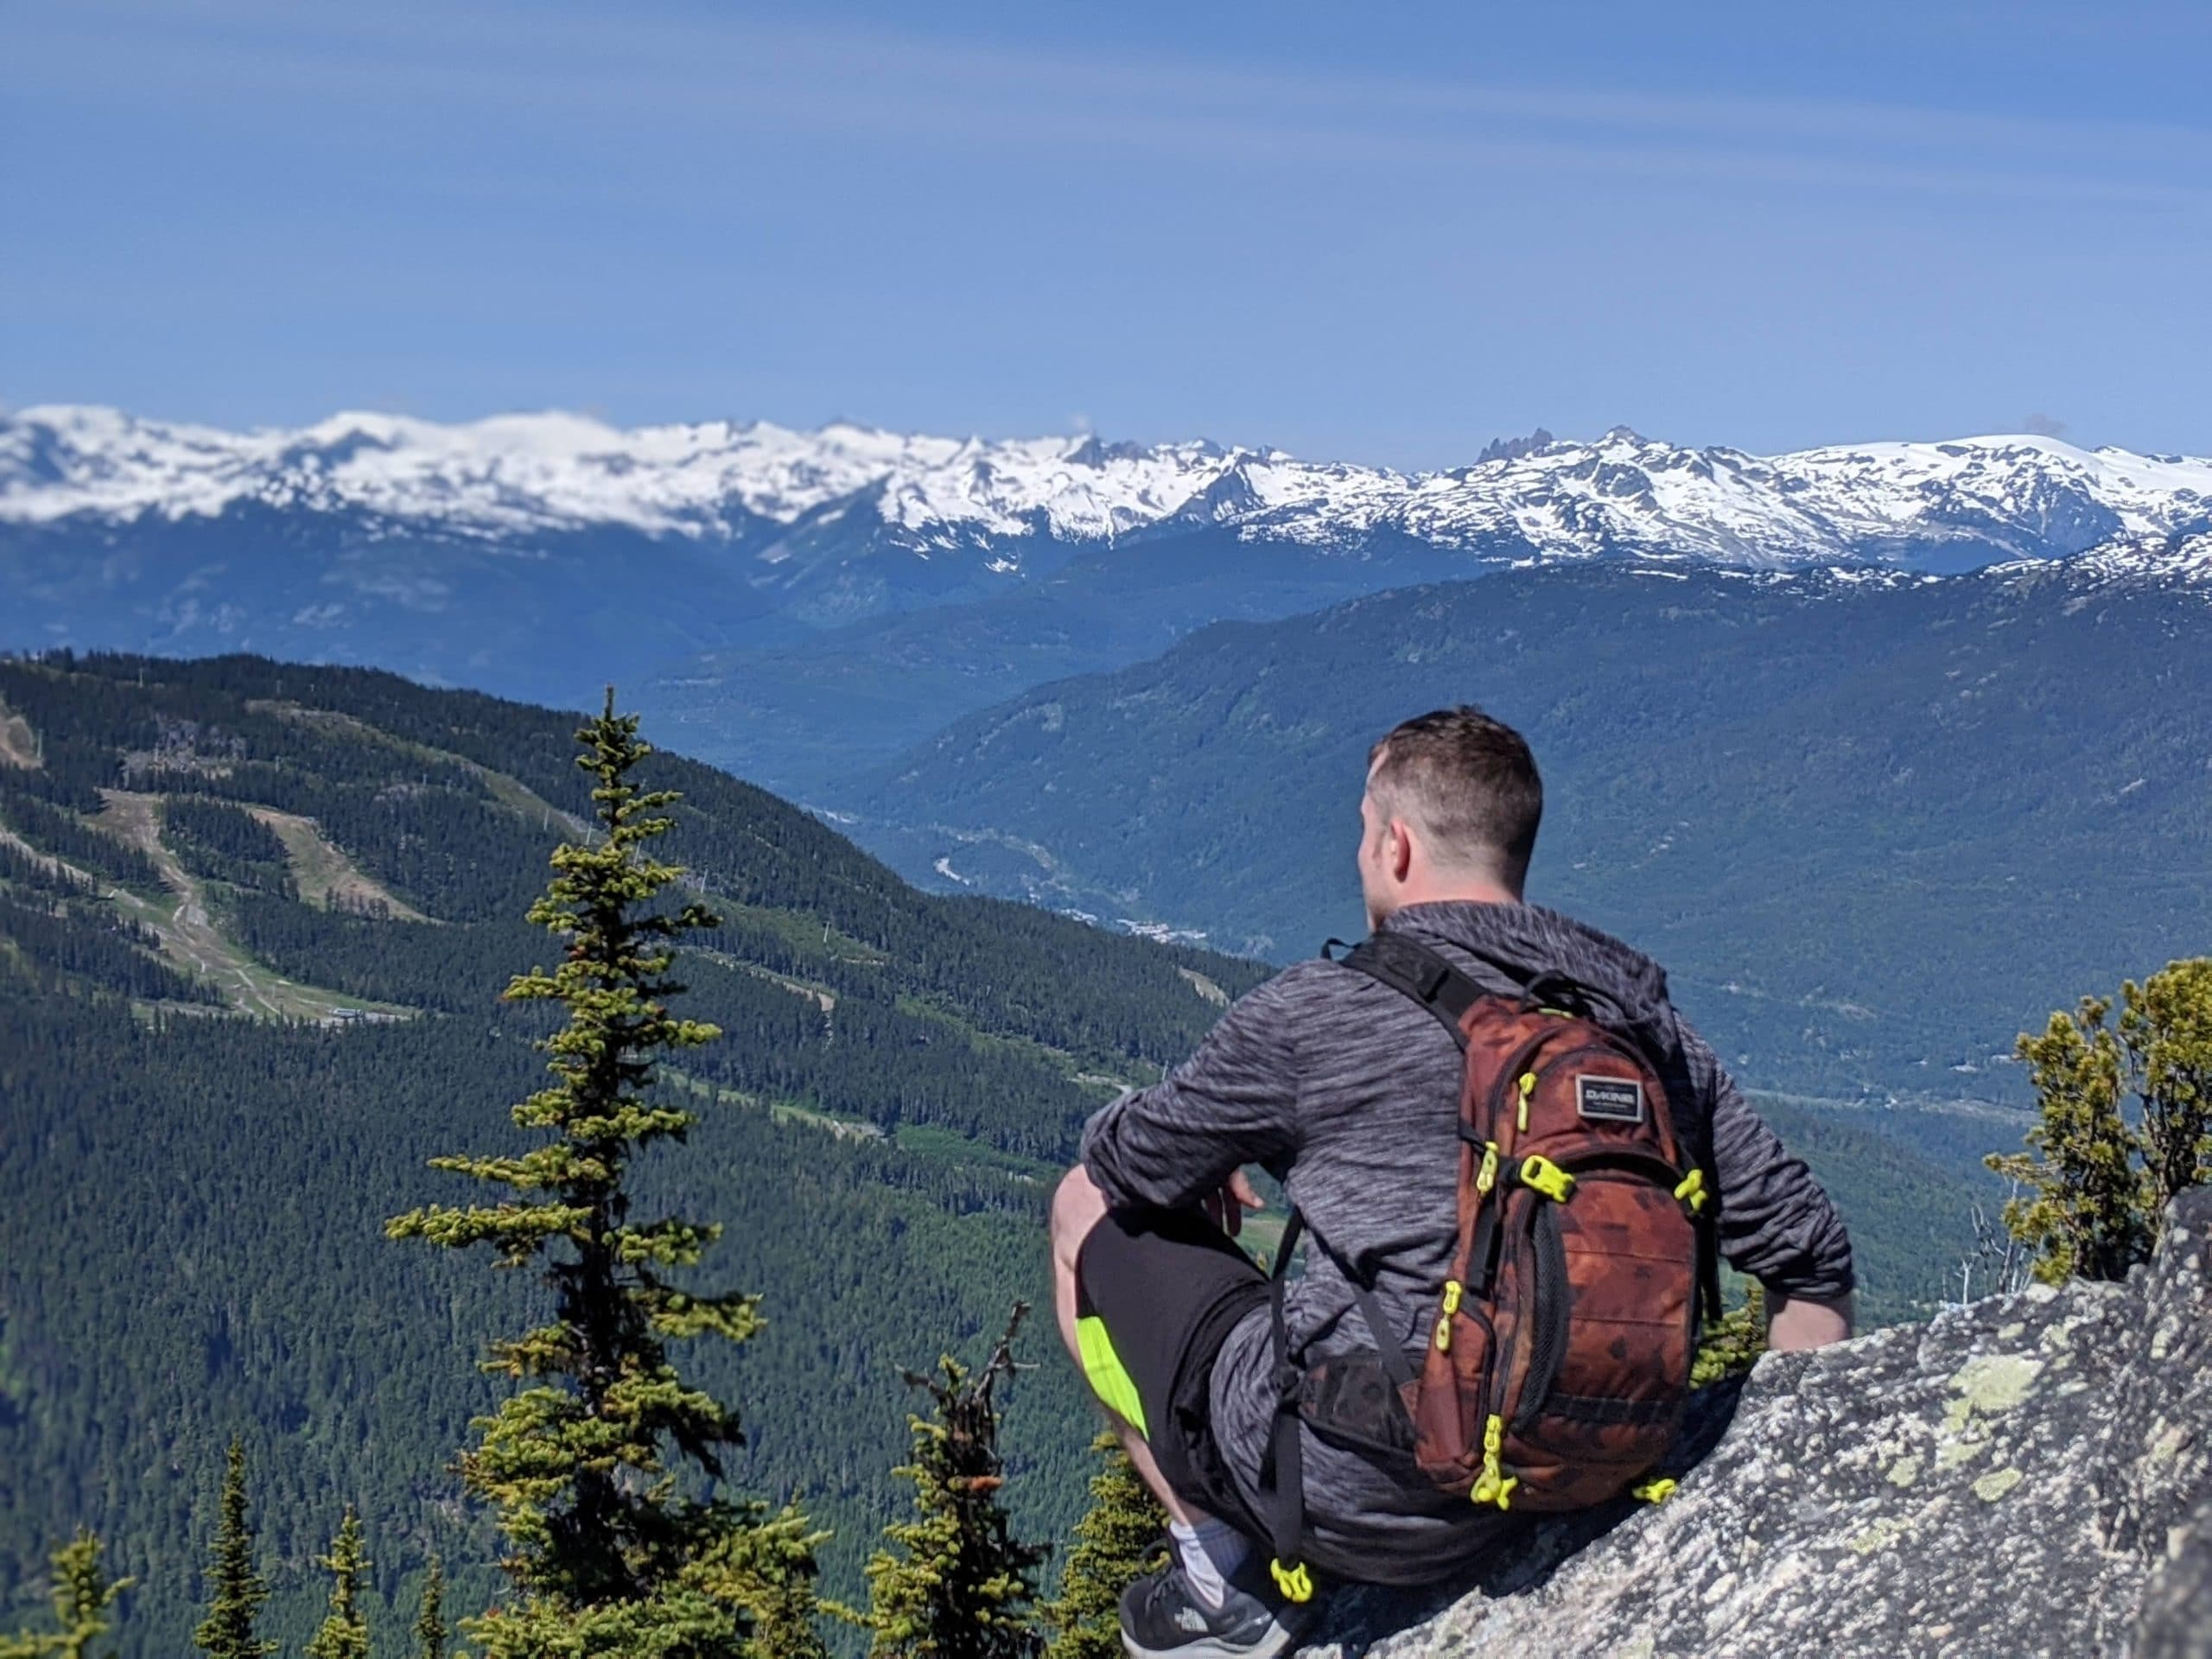 A young man sits on a mountaintop with his back to the camera. He looks out over the snow-capped peaks and forests of Whistler.